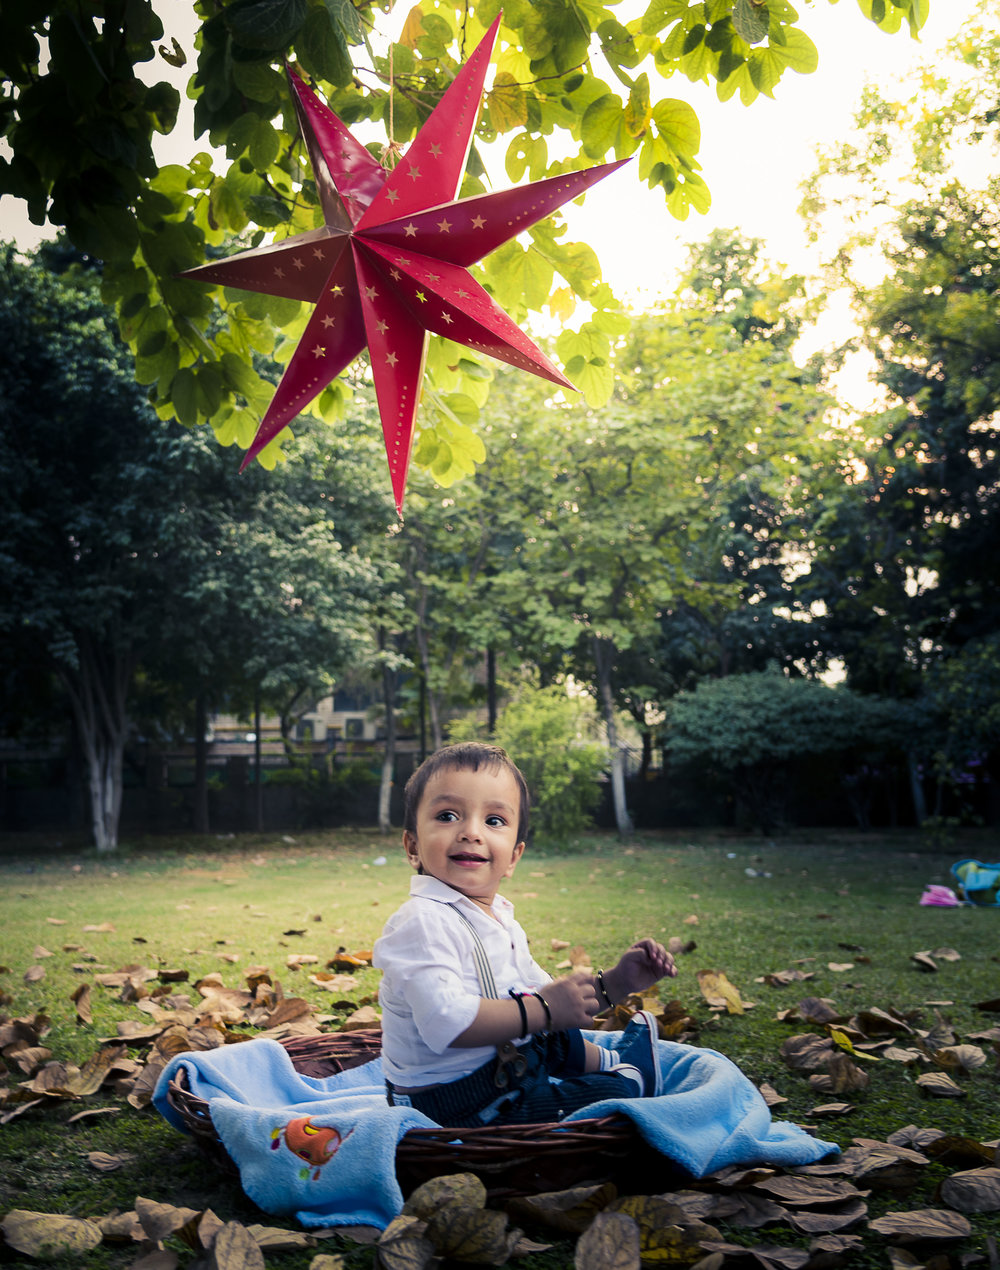 Baby Shoots  - Themes/ConceptsOutdoor/IndoorCoffee Table Books & Posters